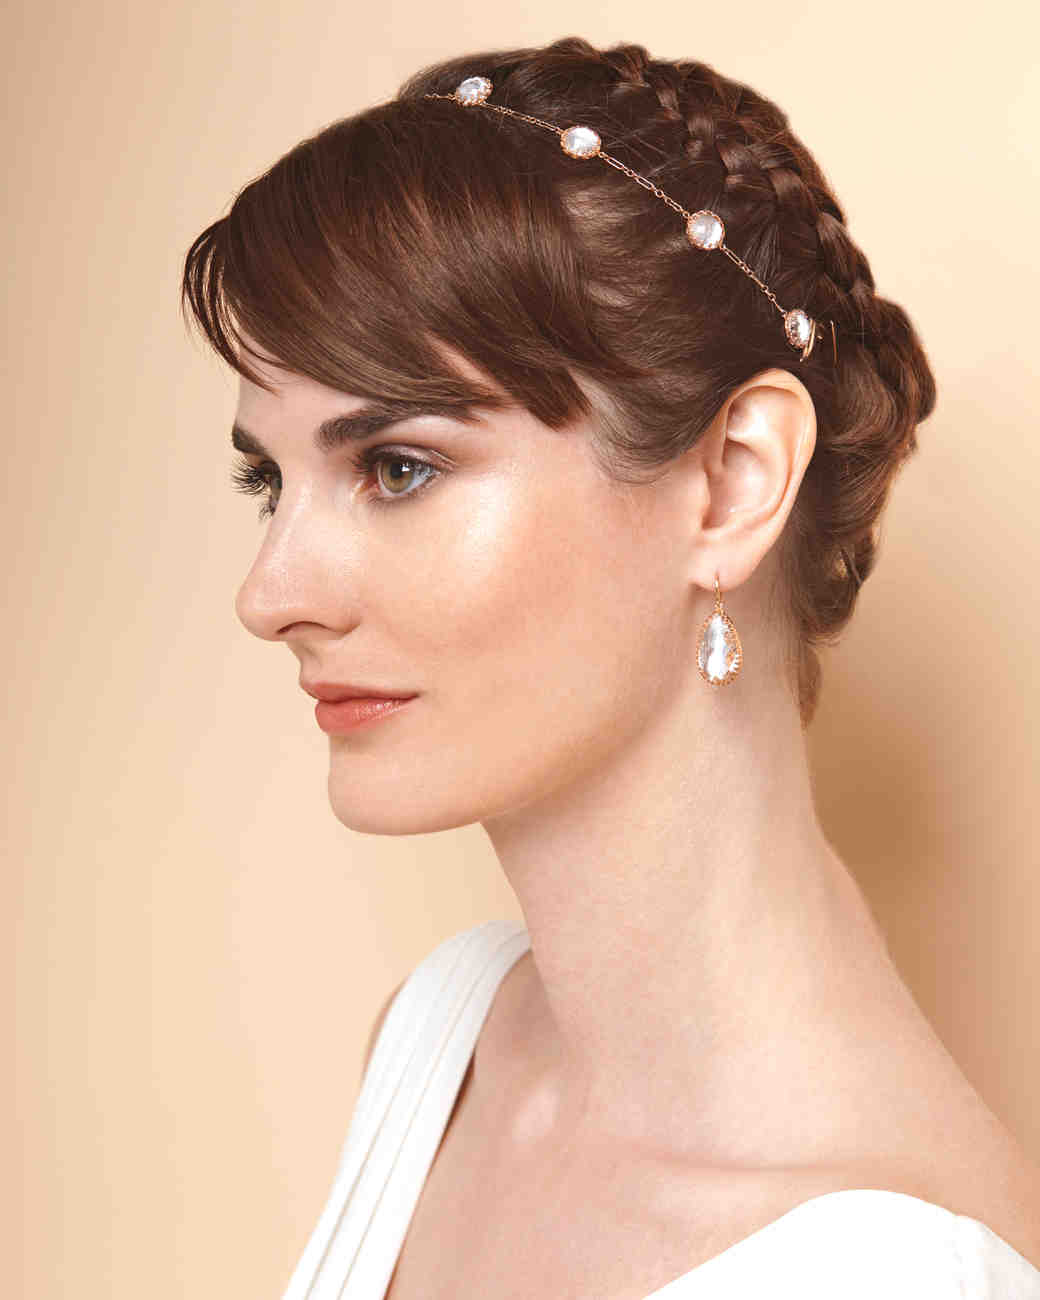 4 Ways To Wear A Short Hairstyle On Your Wedding Day